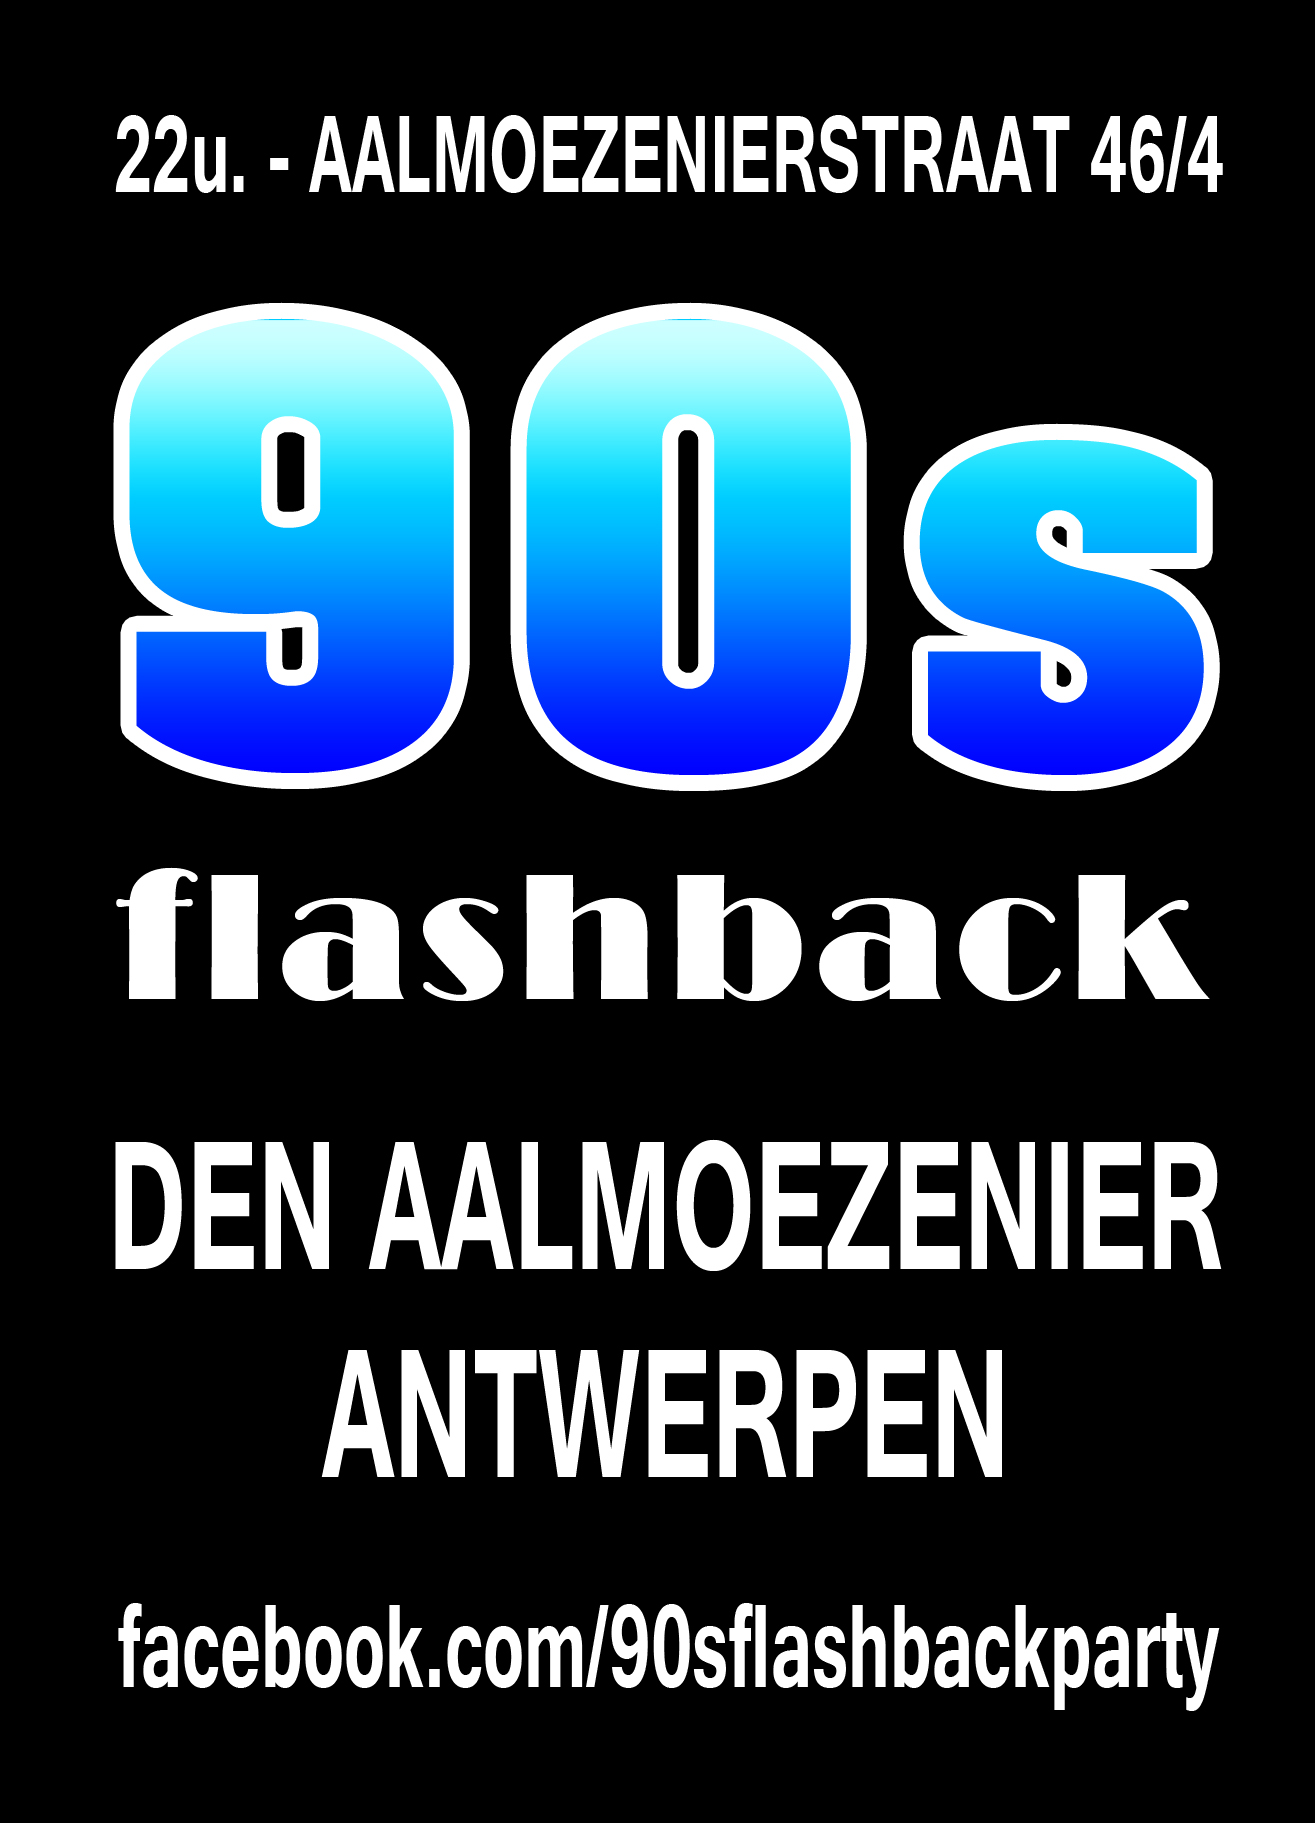 90s Flashback Party affiche op 26/10/2019